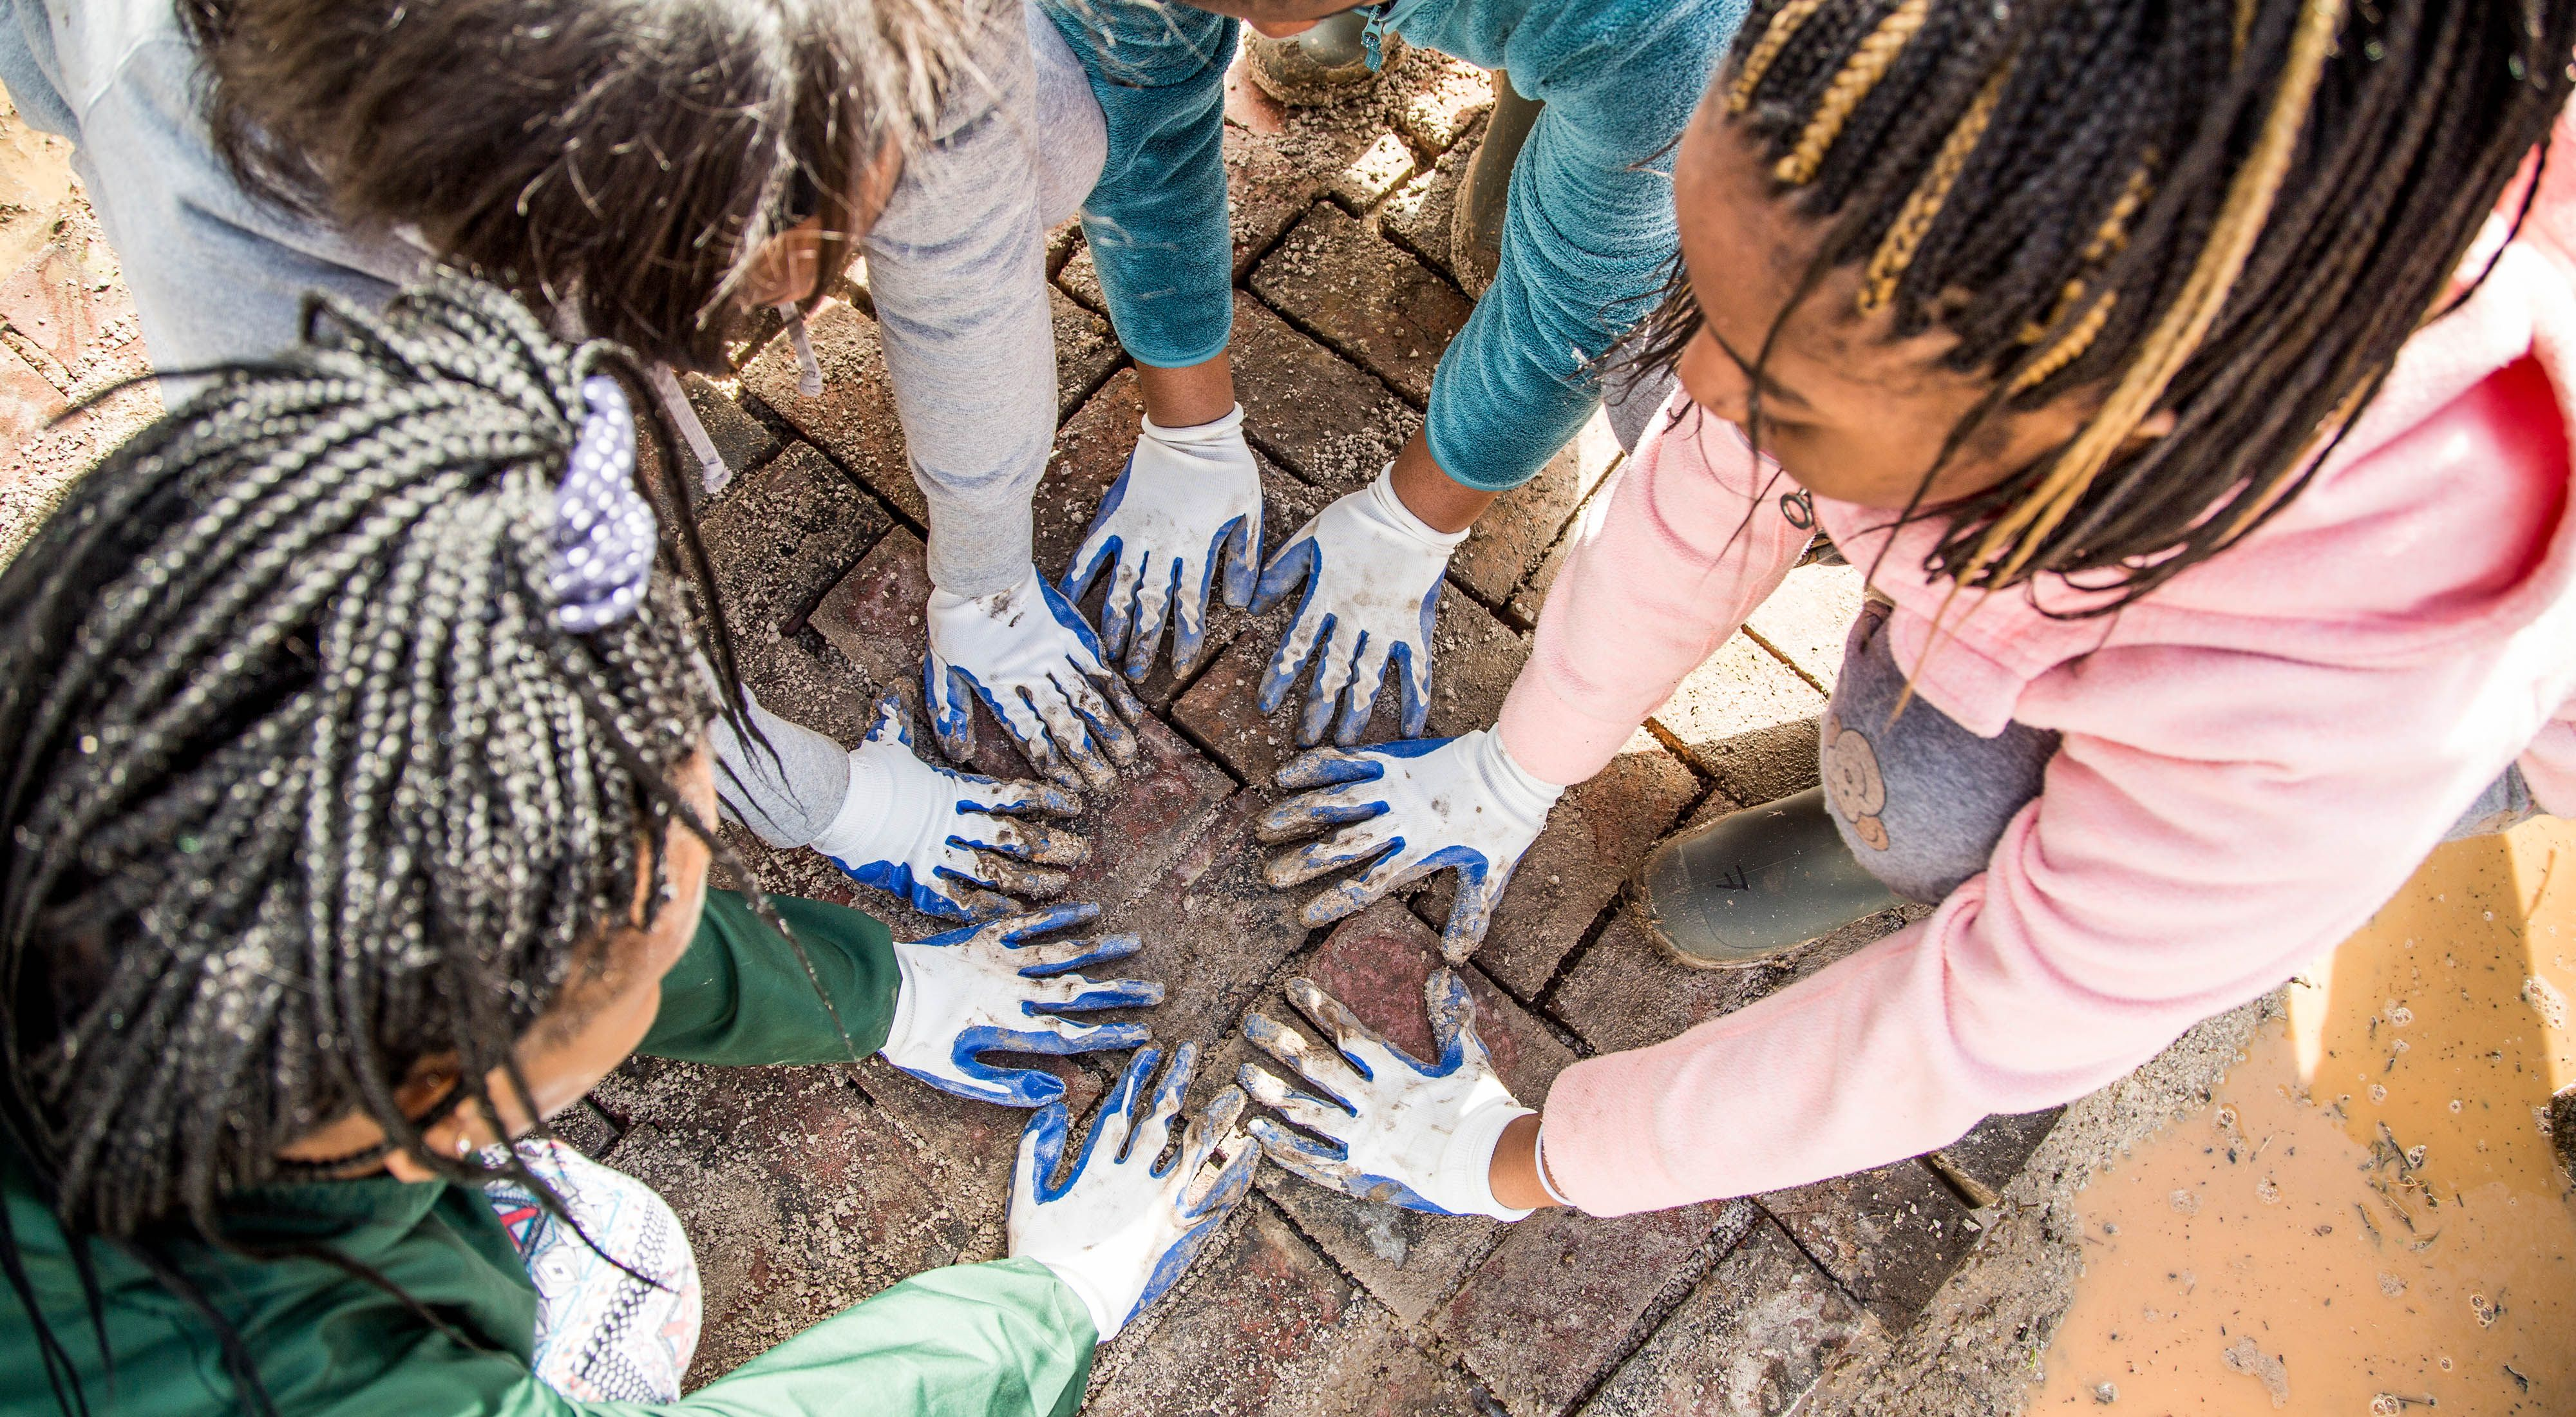 An above-down image of young girls with their hands, adorned in muddy work gloves, together in a circle.